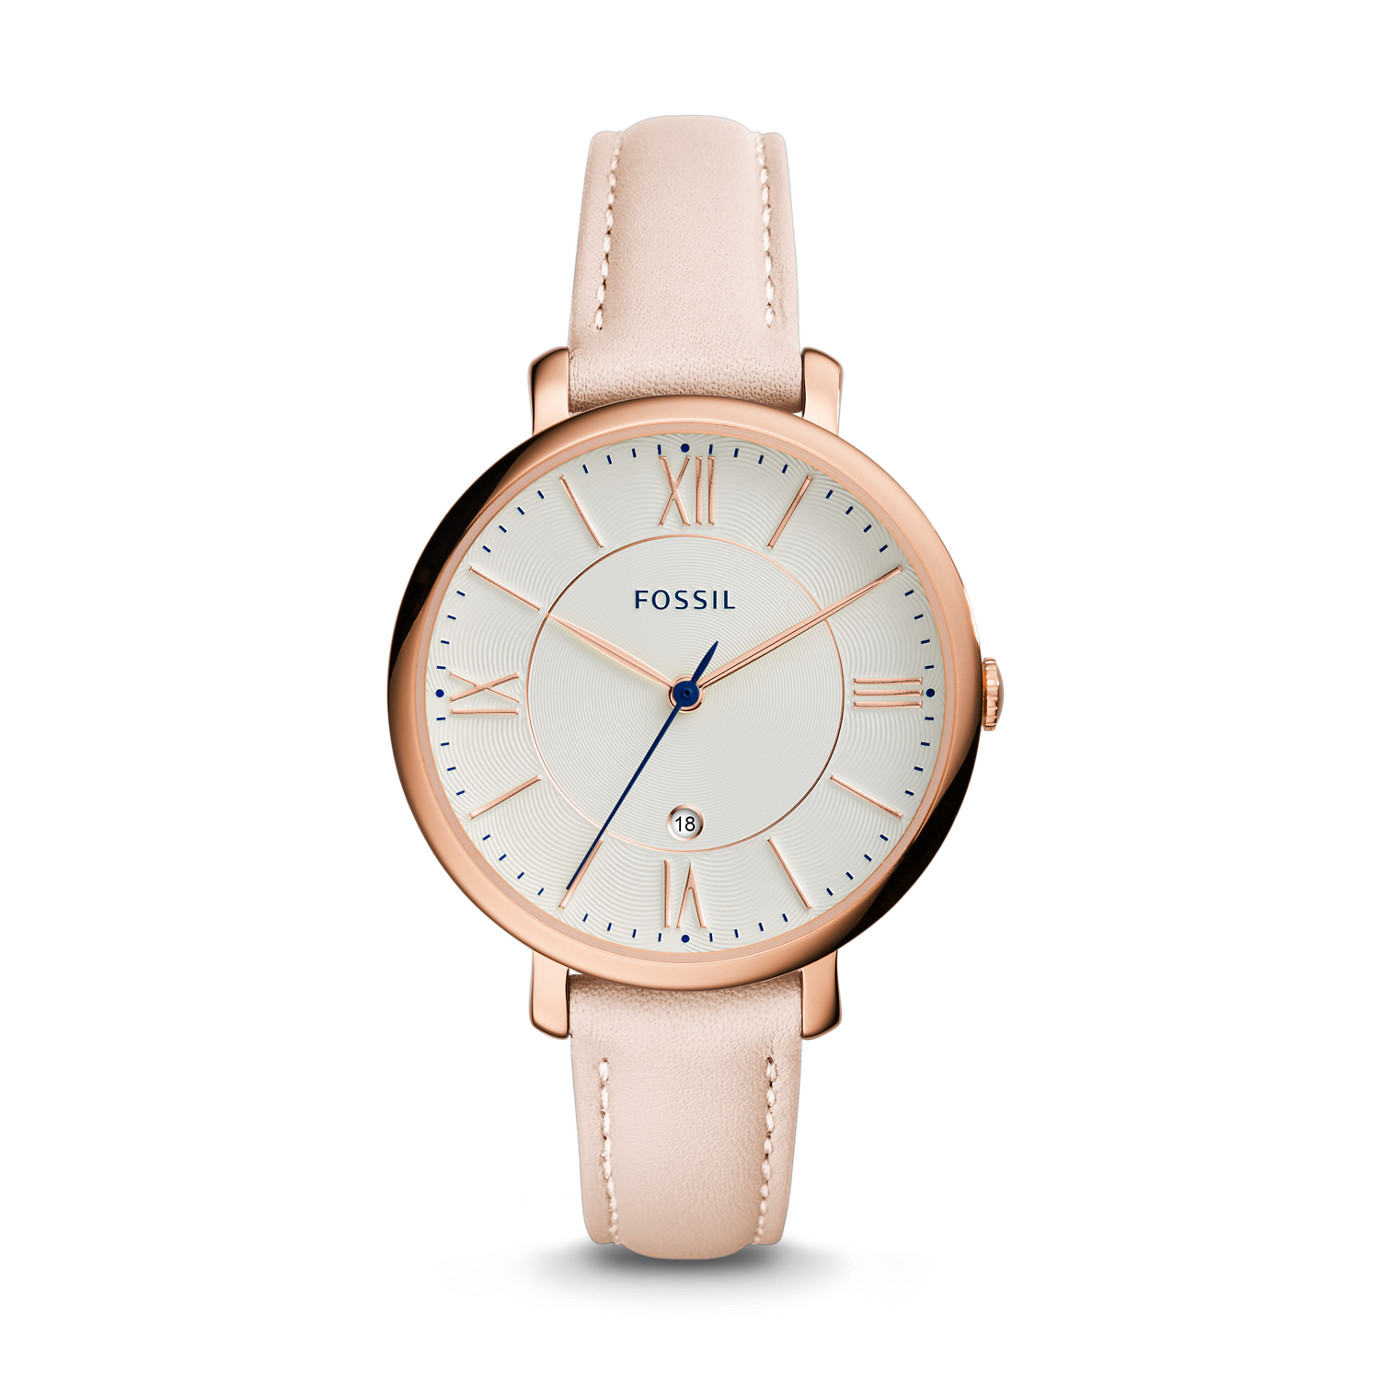 Jacqueline Date Light Brown Leather Watch